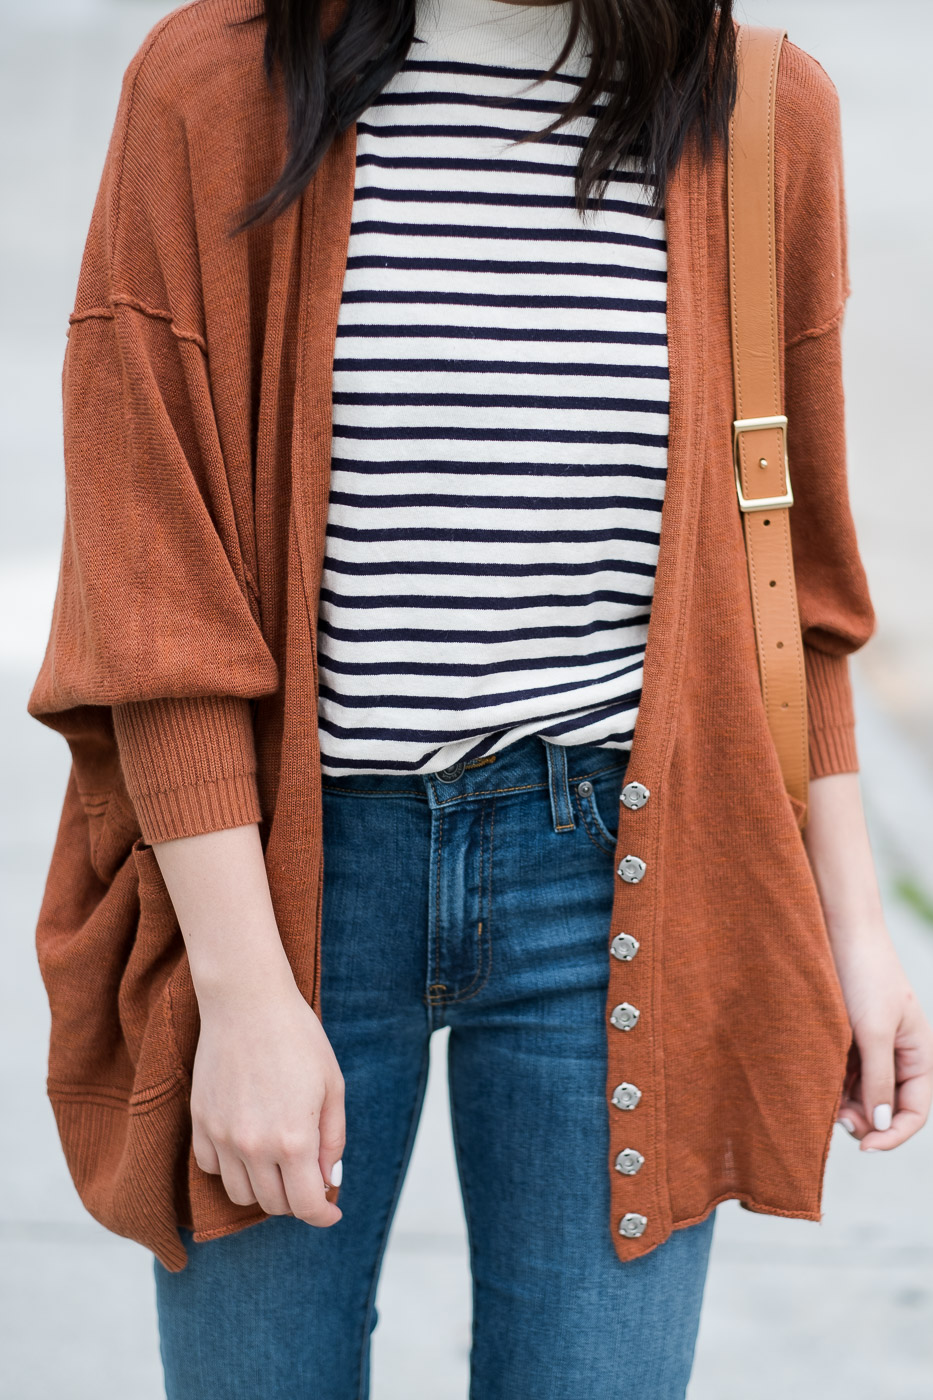 spring-free-people-cardigan-casual-outfit-idea-9